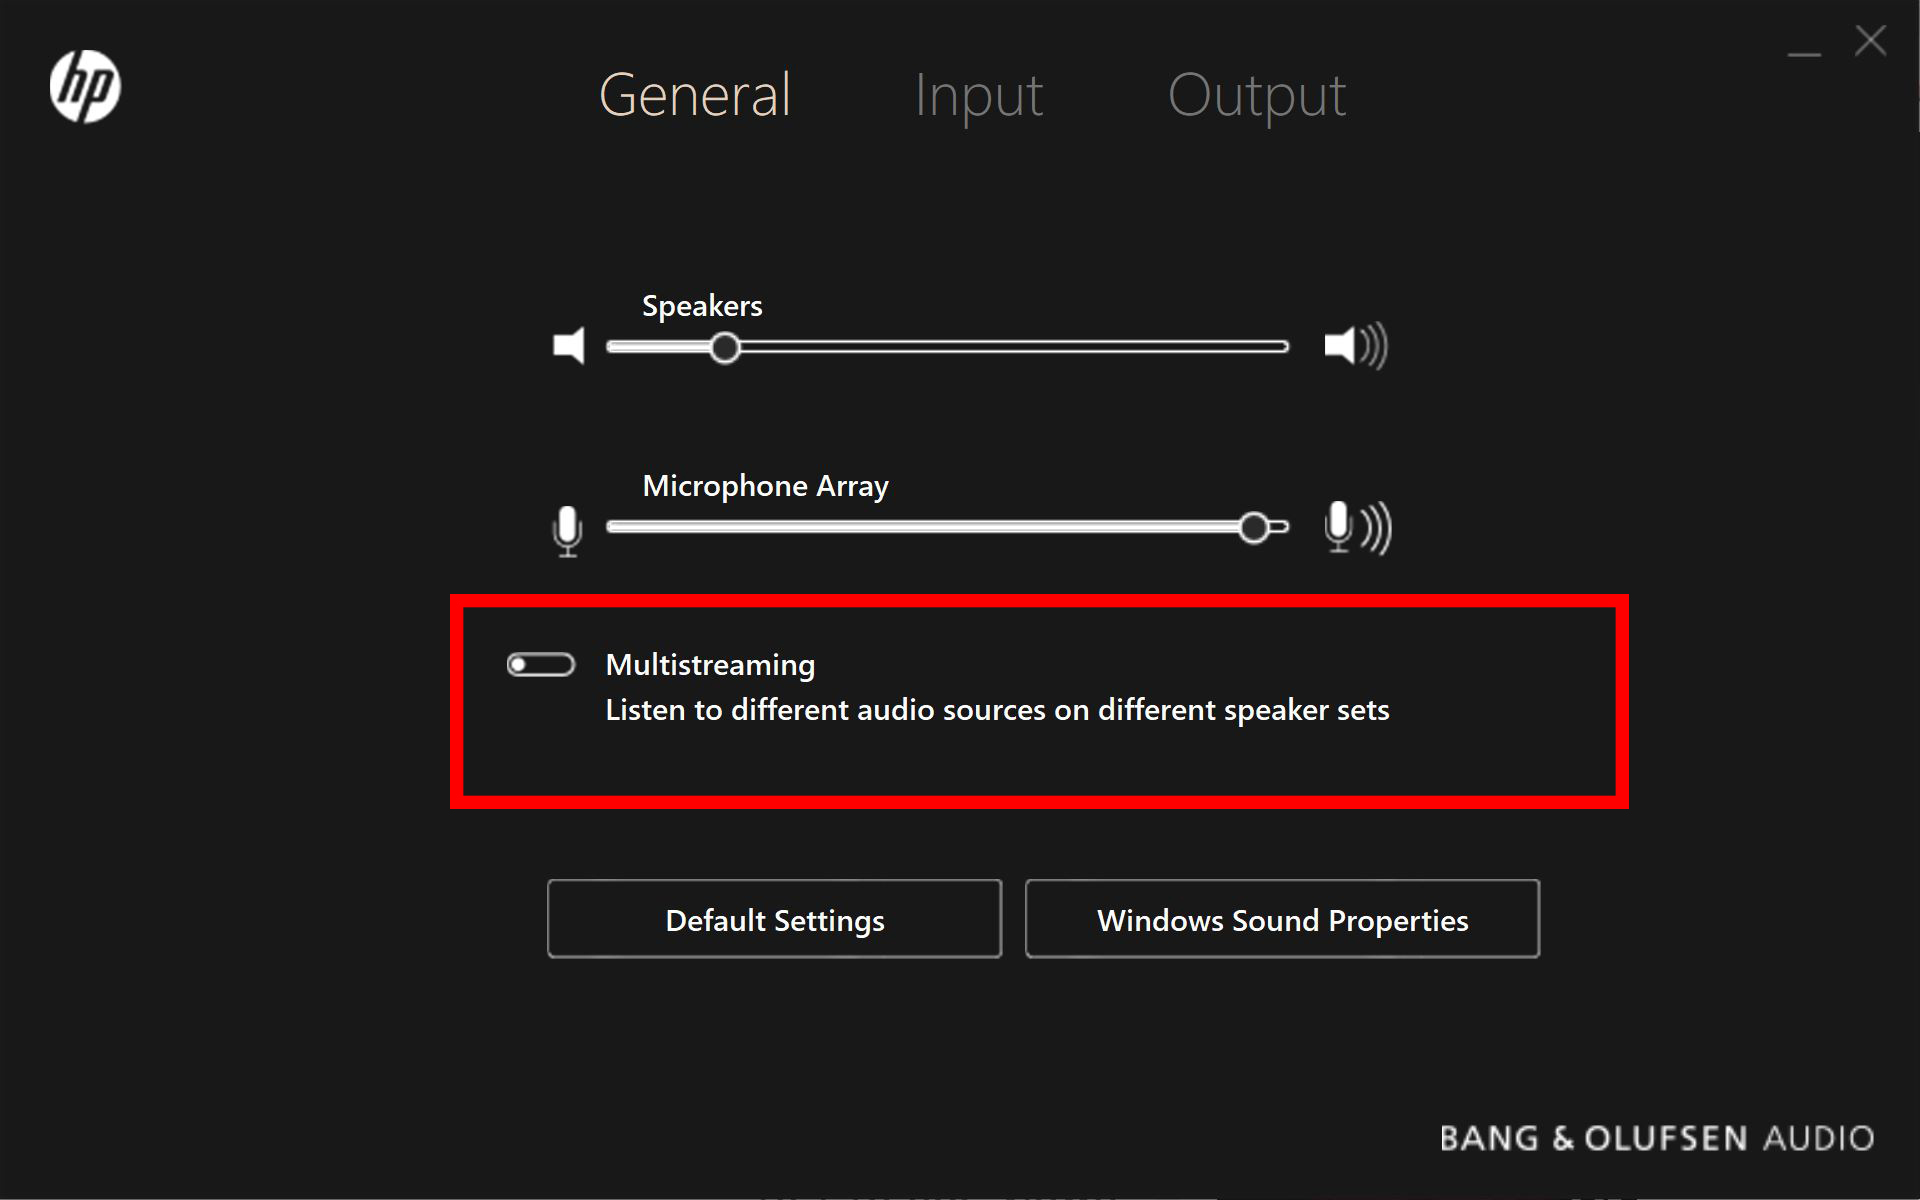 Bang and Olufsen settings greyed out - HP Support Community - 5720016